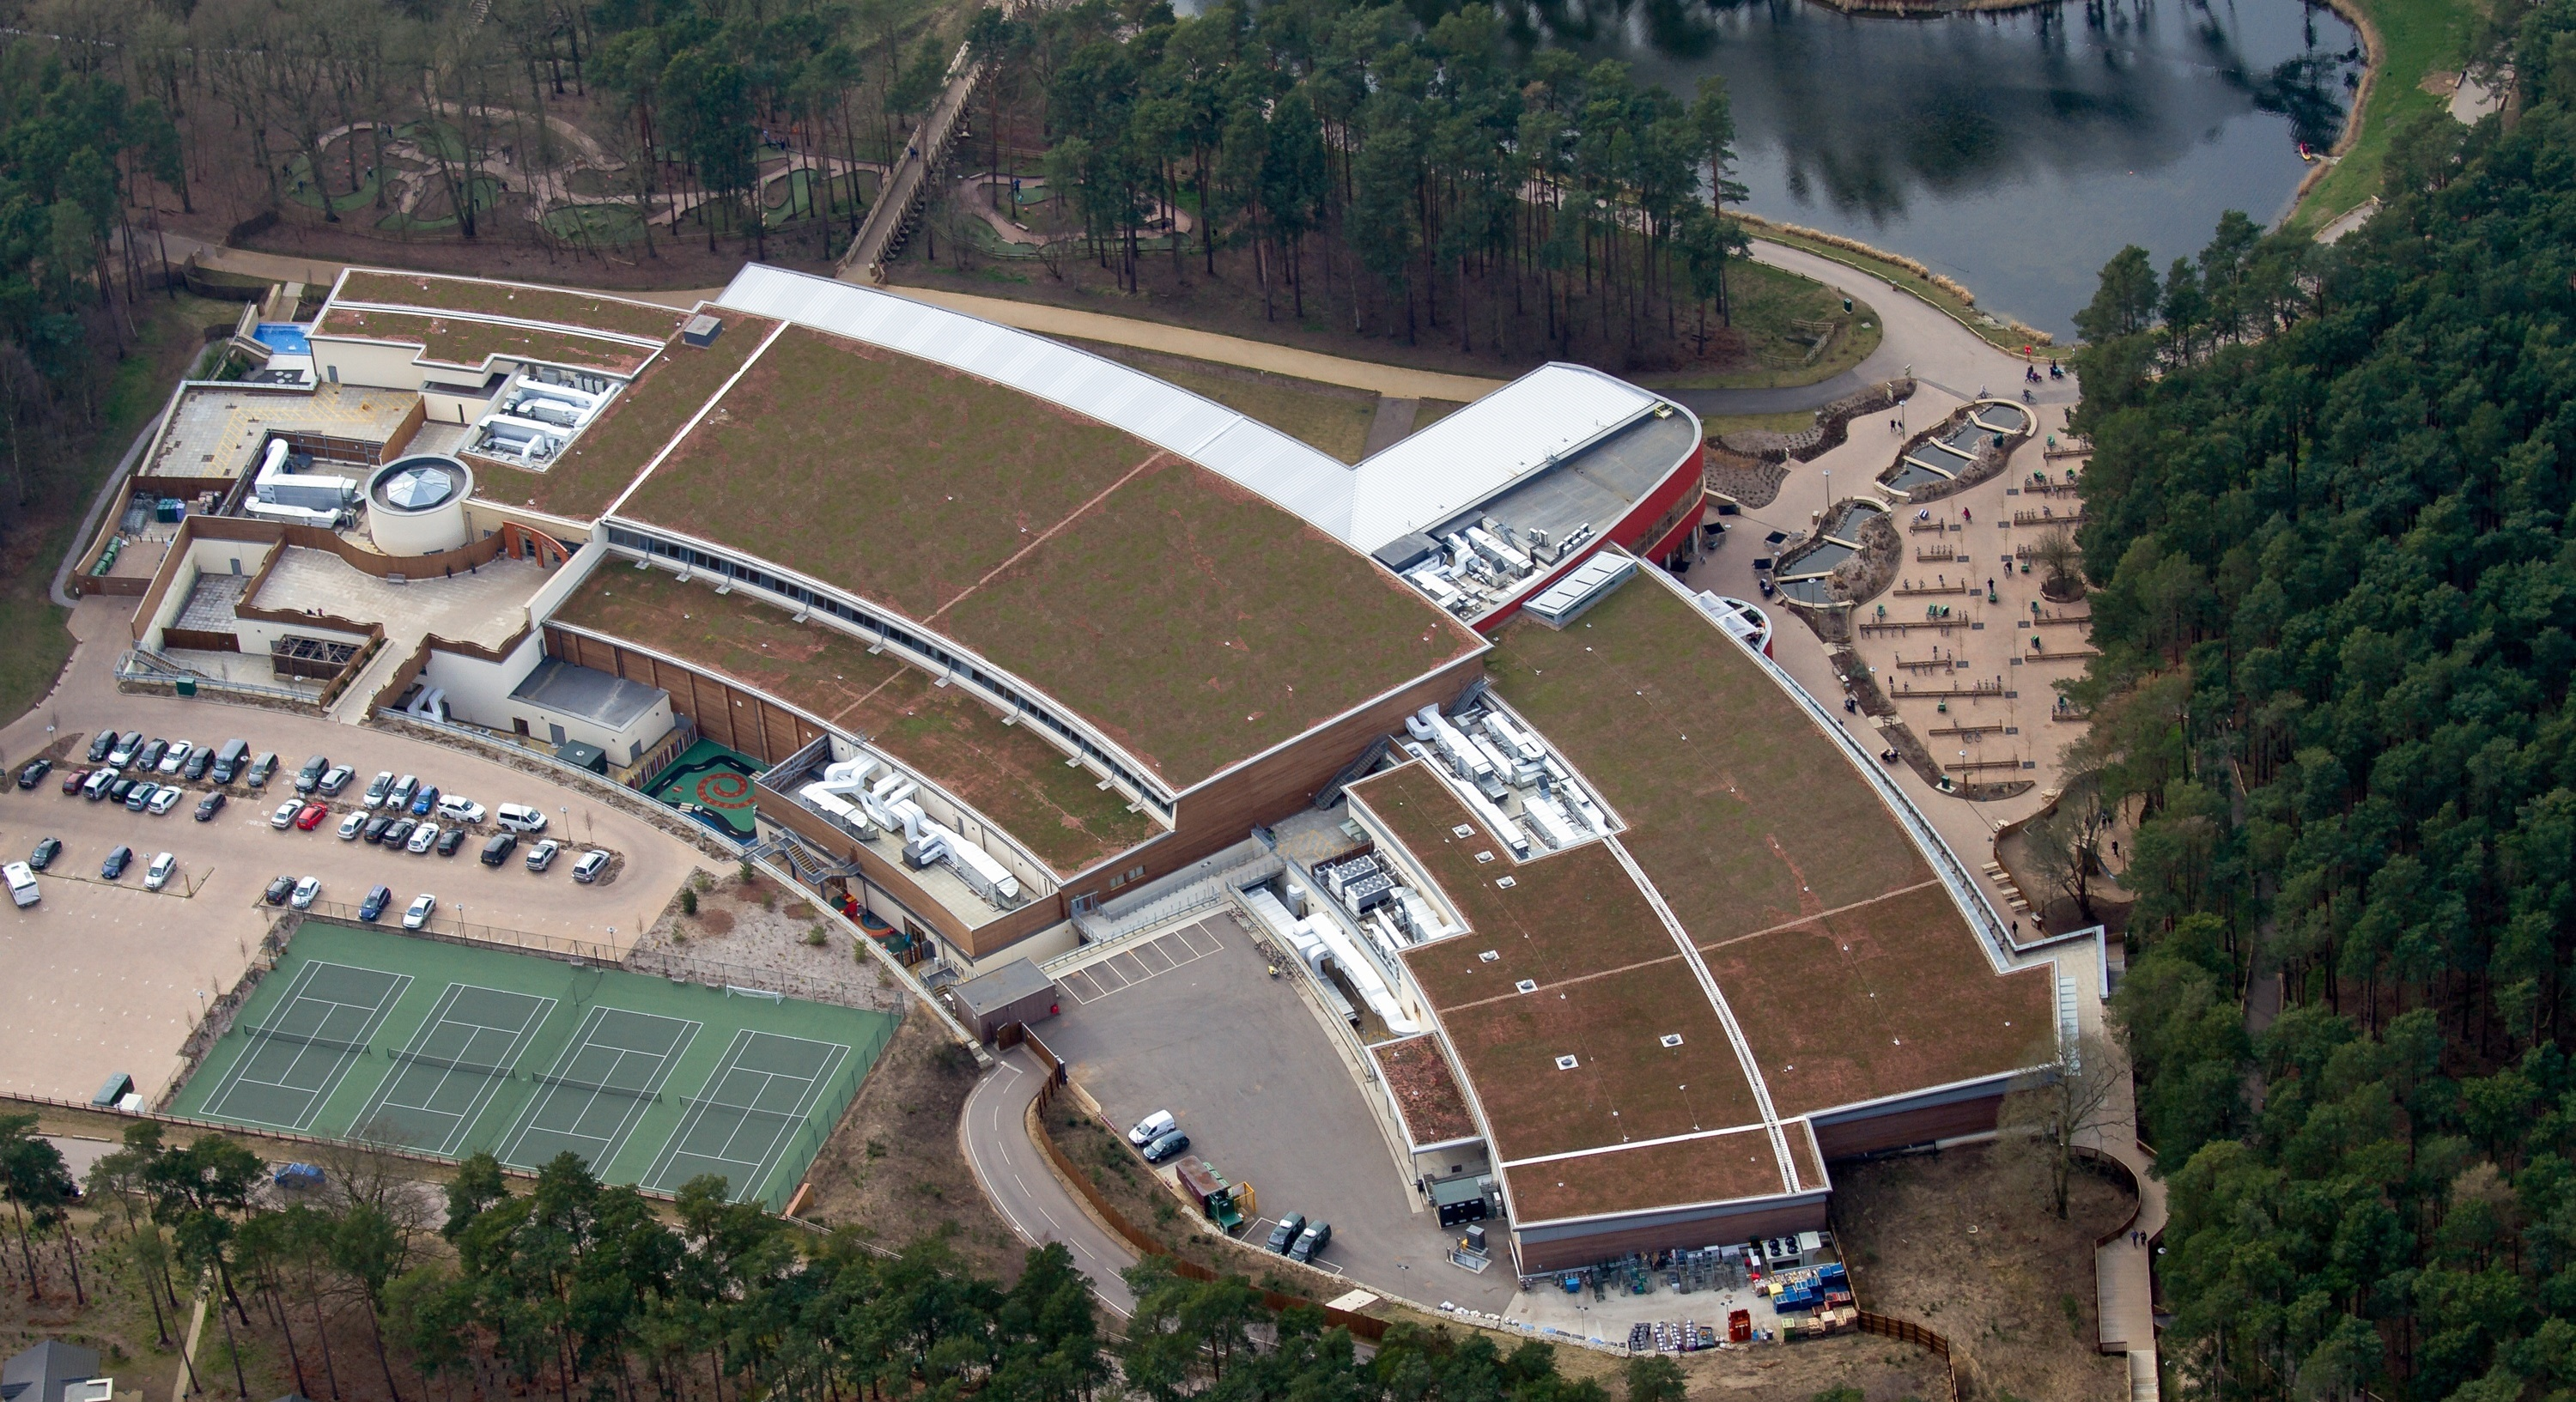 Center Parcs Green Roof